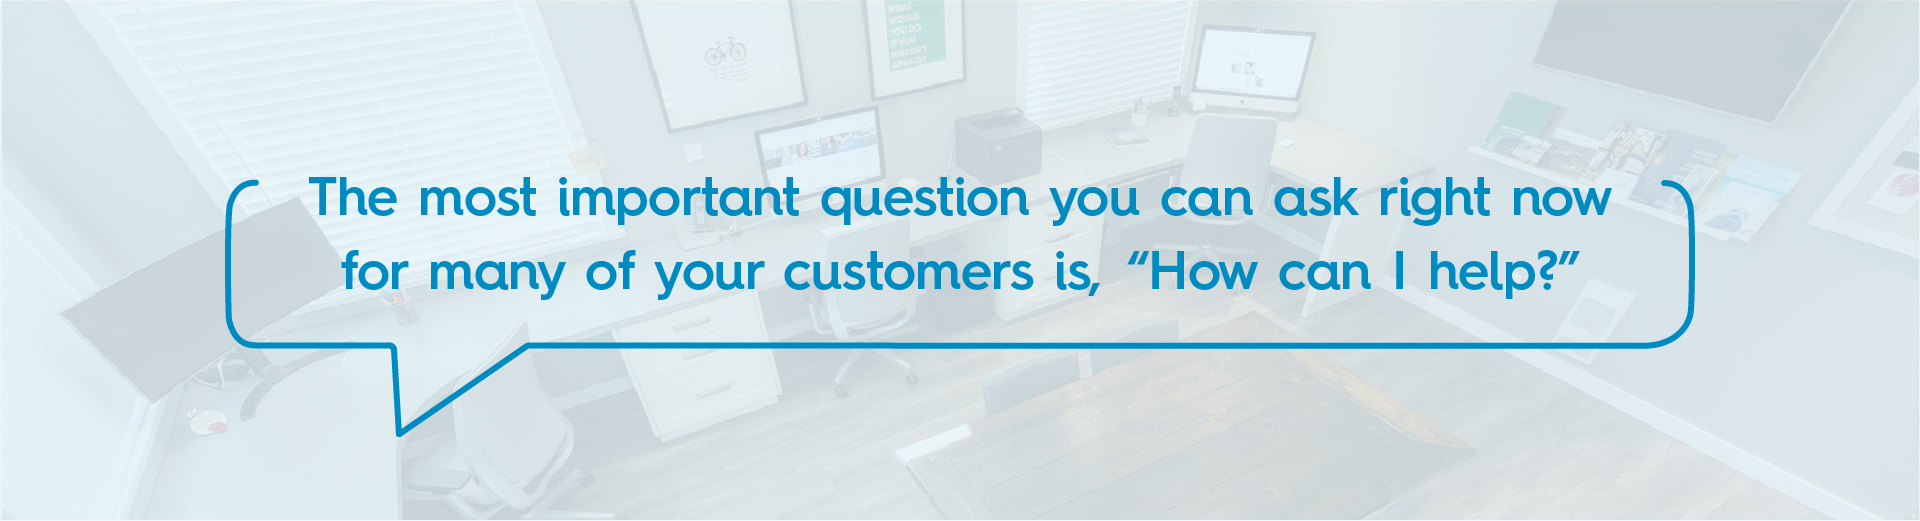 "The most important question you can ask right now for many of your customers is, ""How can I help?"""